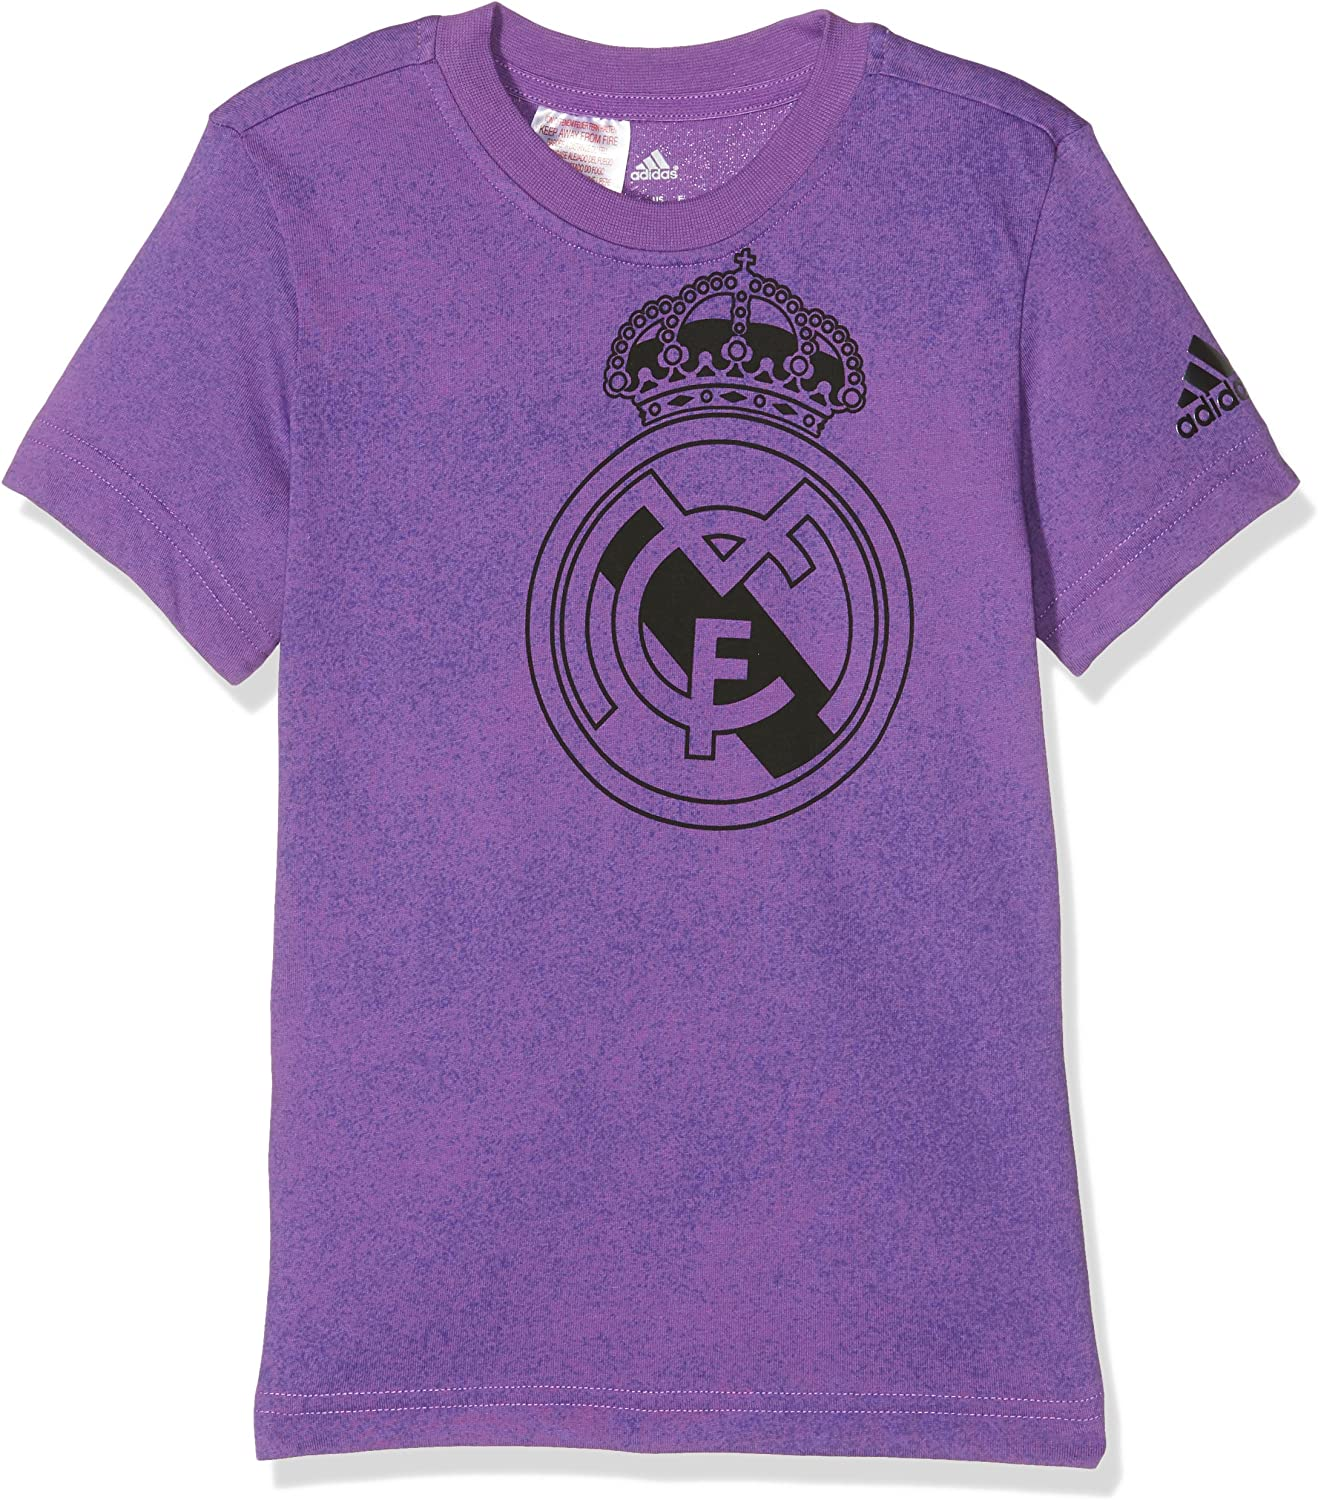 adidas Yb Real Madrid tee Camiseta de Manga Corta, Niños: Amazon ...